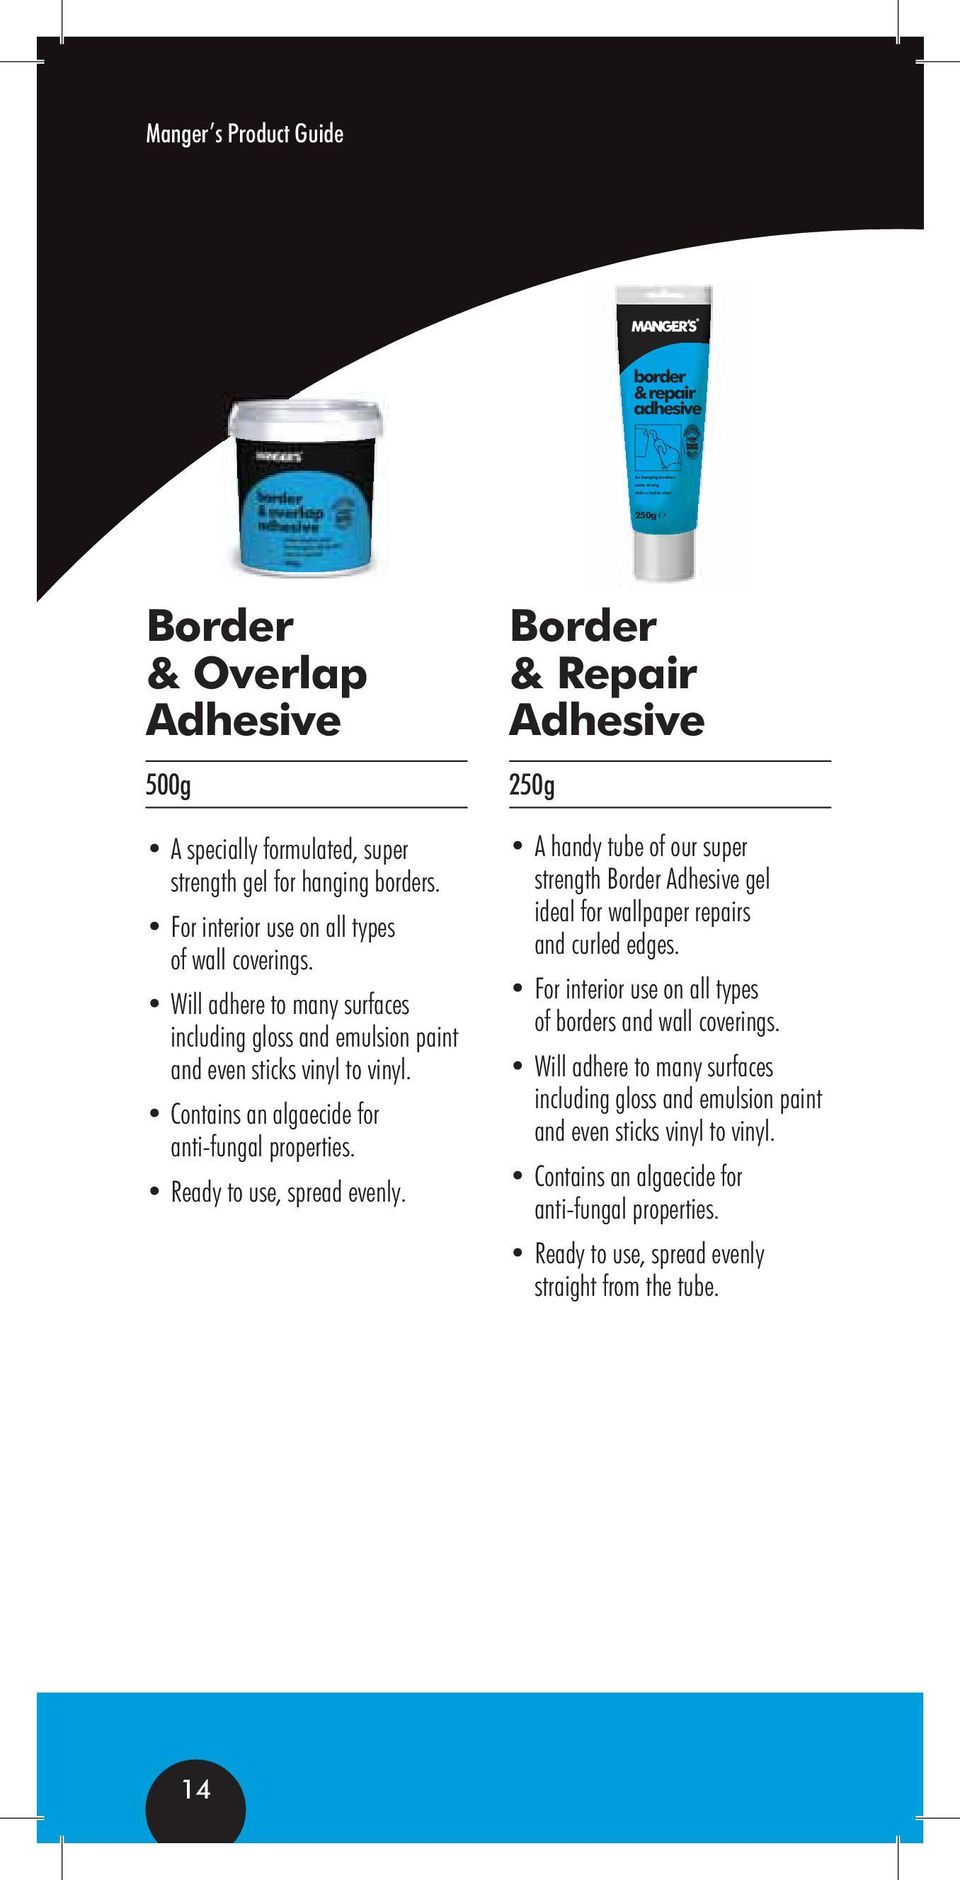 Ready to use, spread evenly. Border & Repair Adhesive 250g A handy tube of our super strength Border Adhesive gel ideal for wallpaper repairs and curled edges.